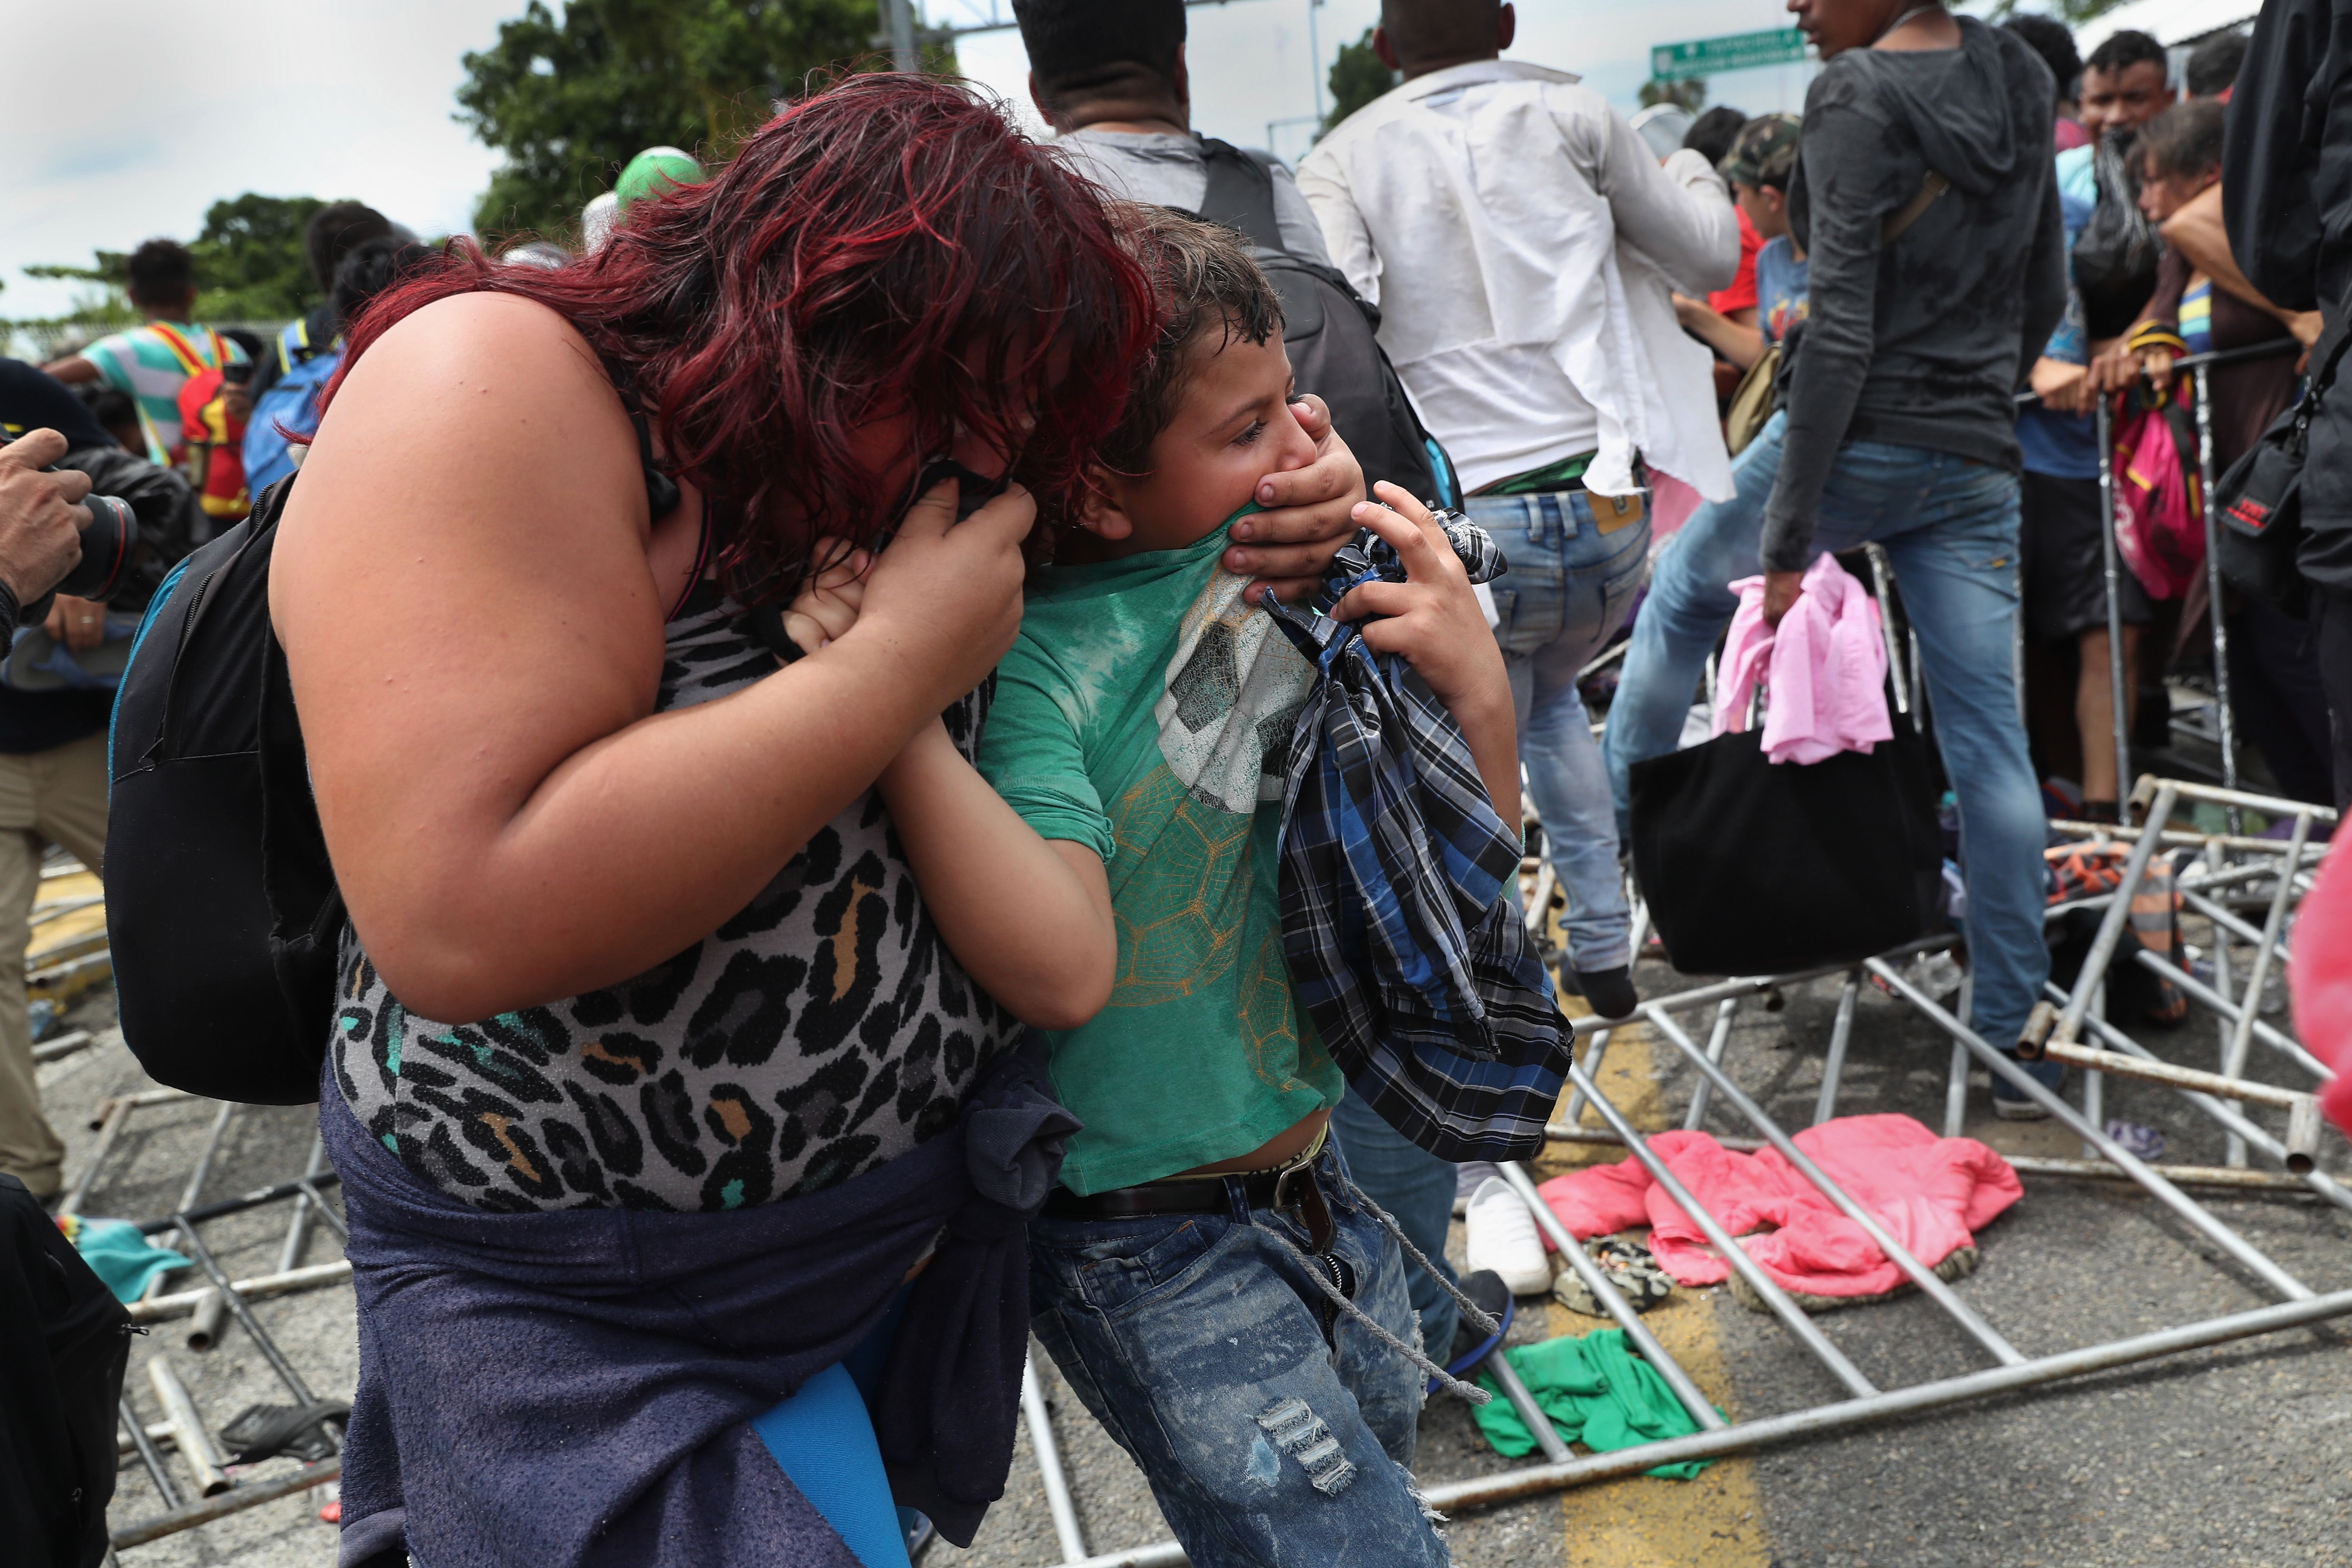 Migrants hit with tear gas